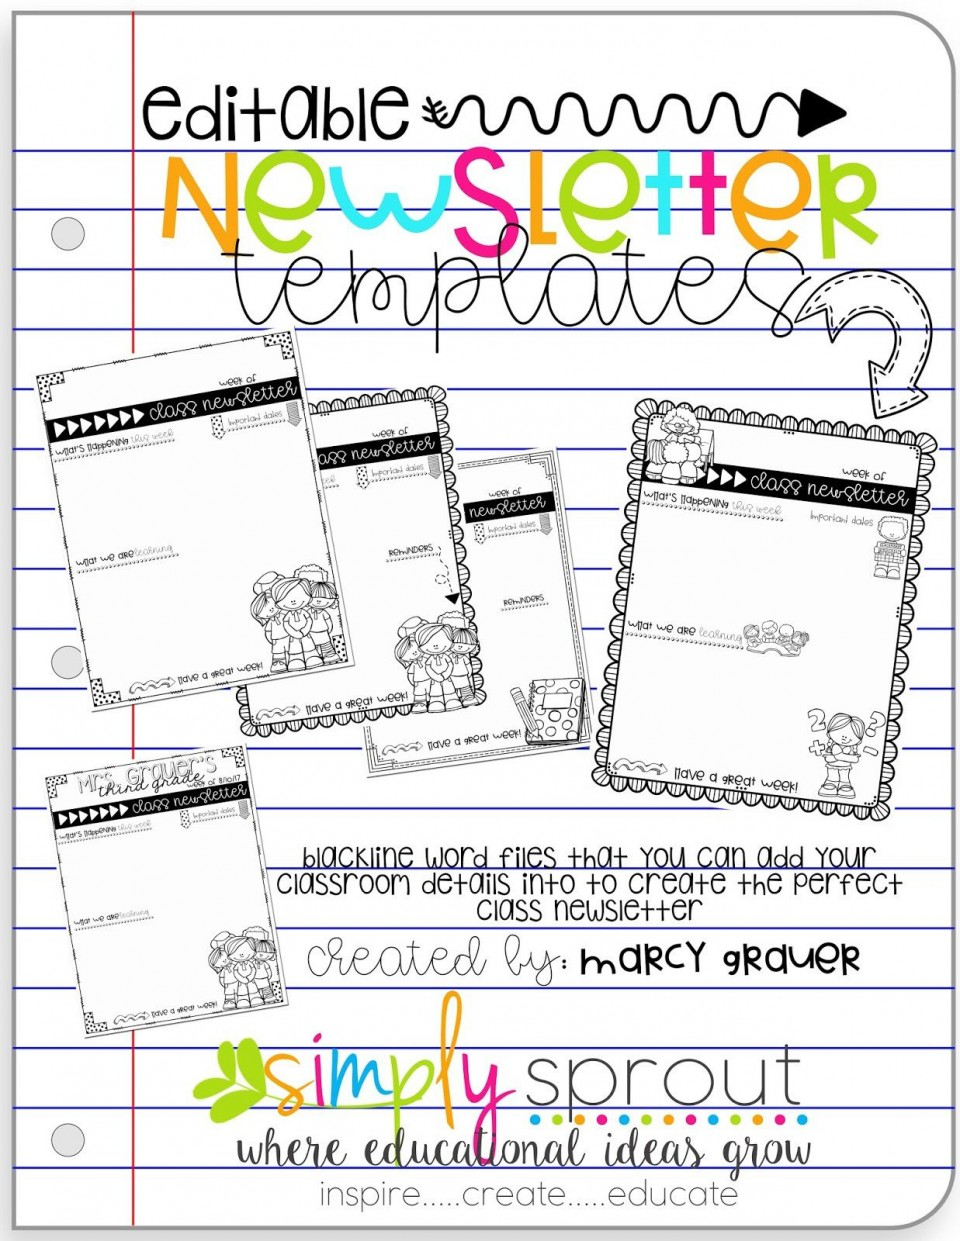 009 Astounding School Newsletter Template Free Image  Publisher Editable Counselor960